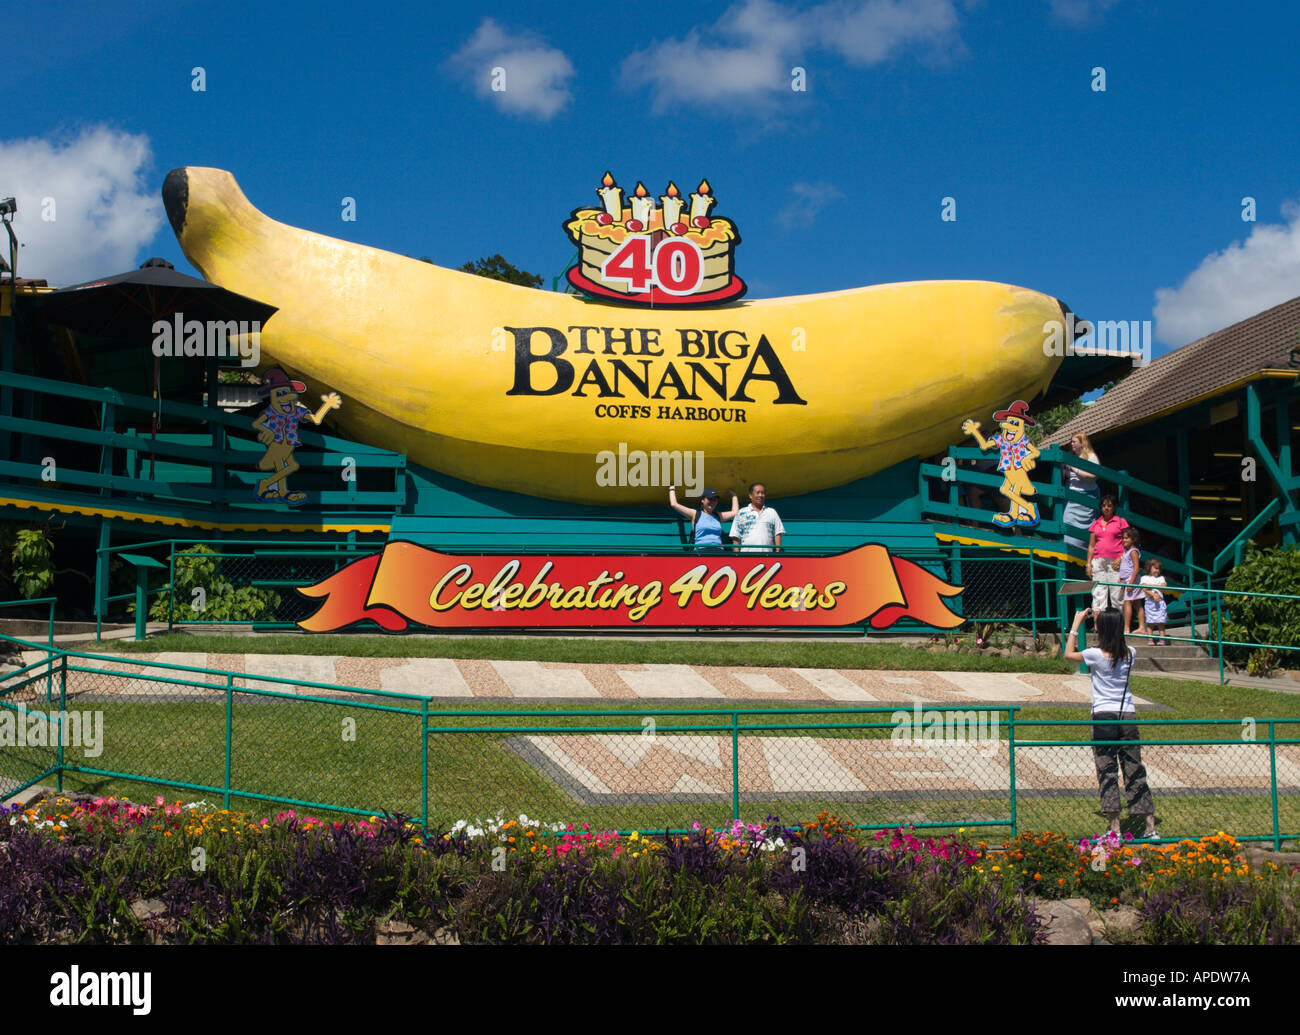 The Big Banana celebrating 40 years as a major tourist attraction at Coffs Harbour on the Pacific coast of NSW Australia Stock Photo